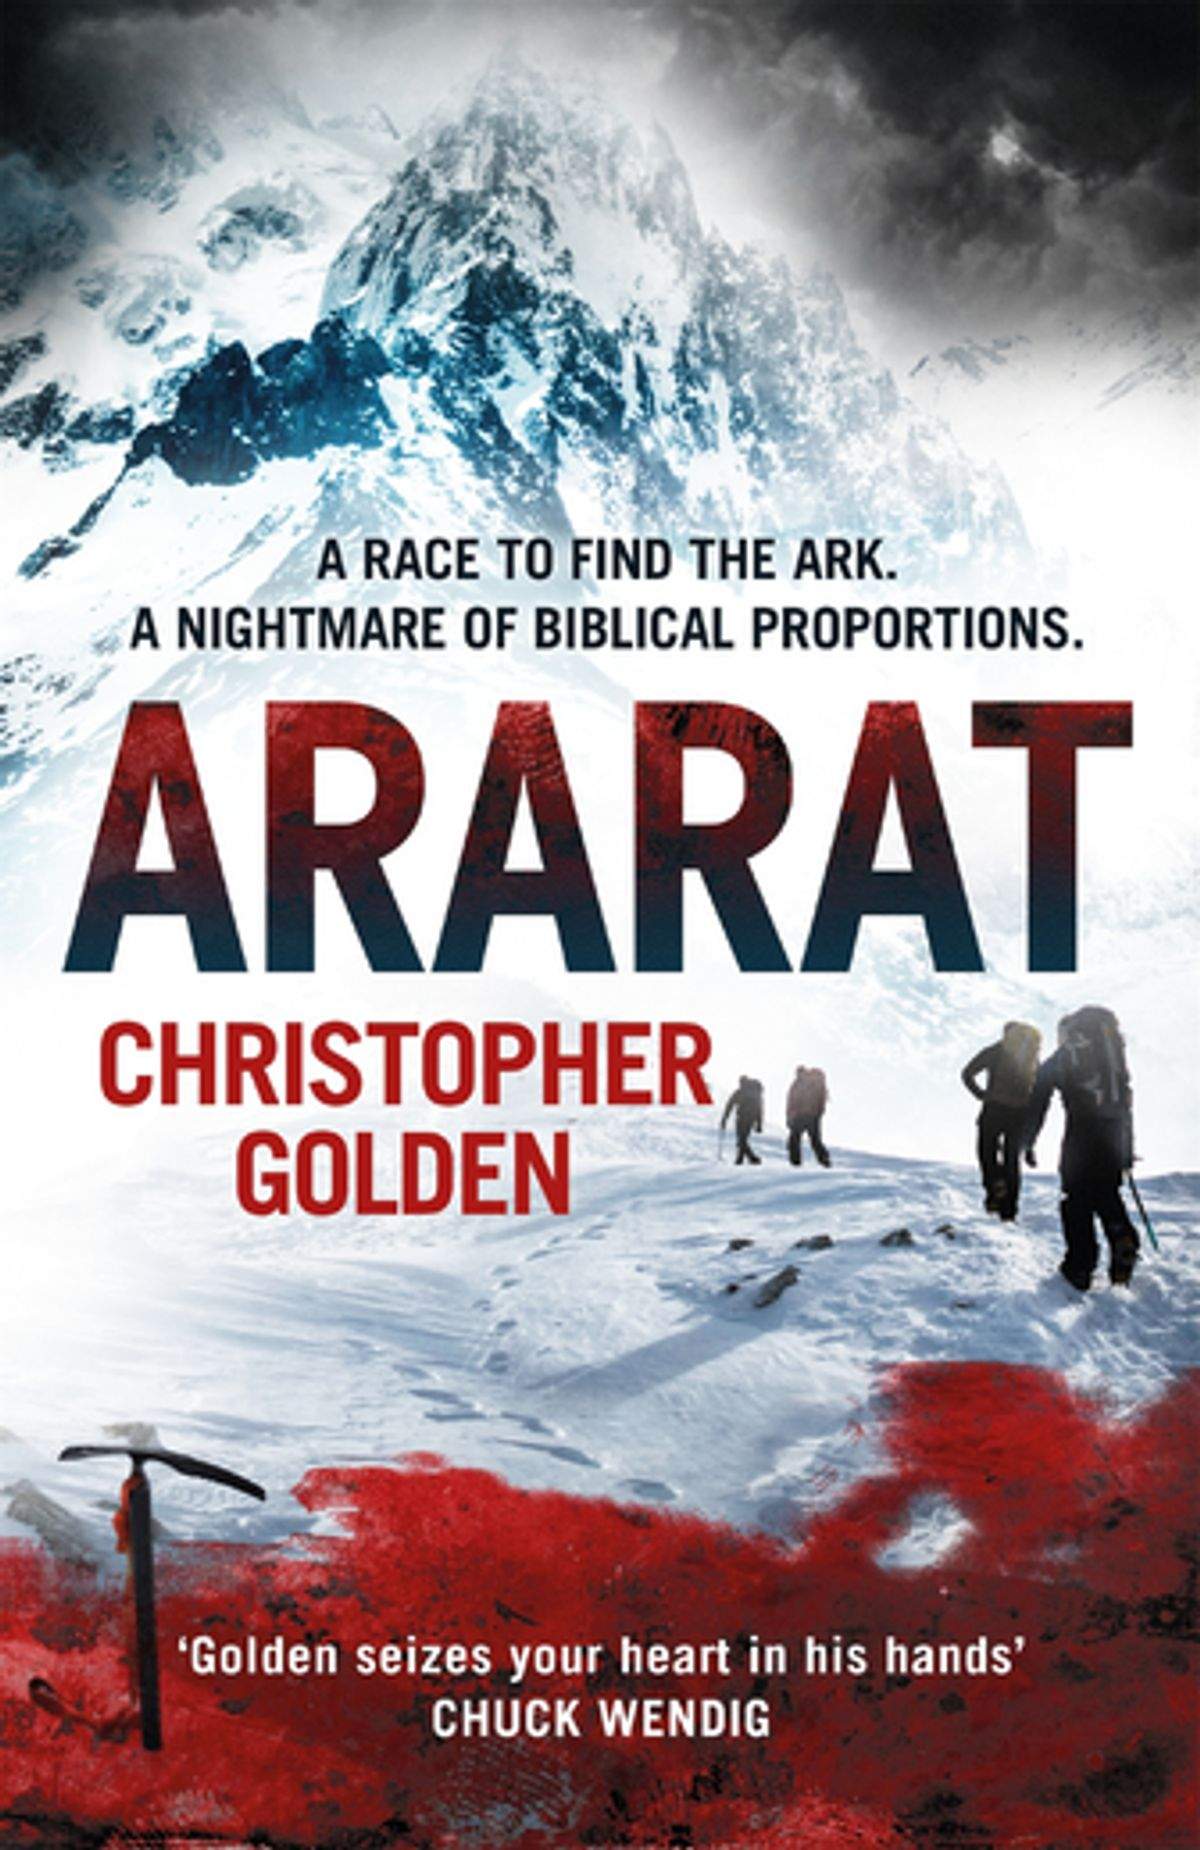 Ararat: a 2017 Bram Stoker Award winner by Christopher Golden, ISBN: 9781472234315